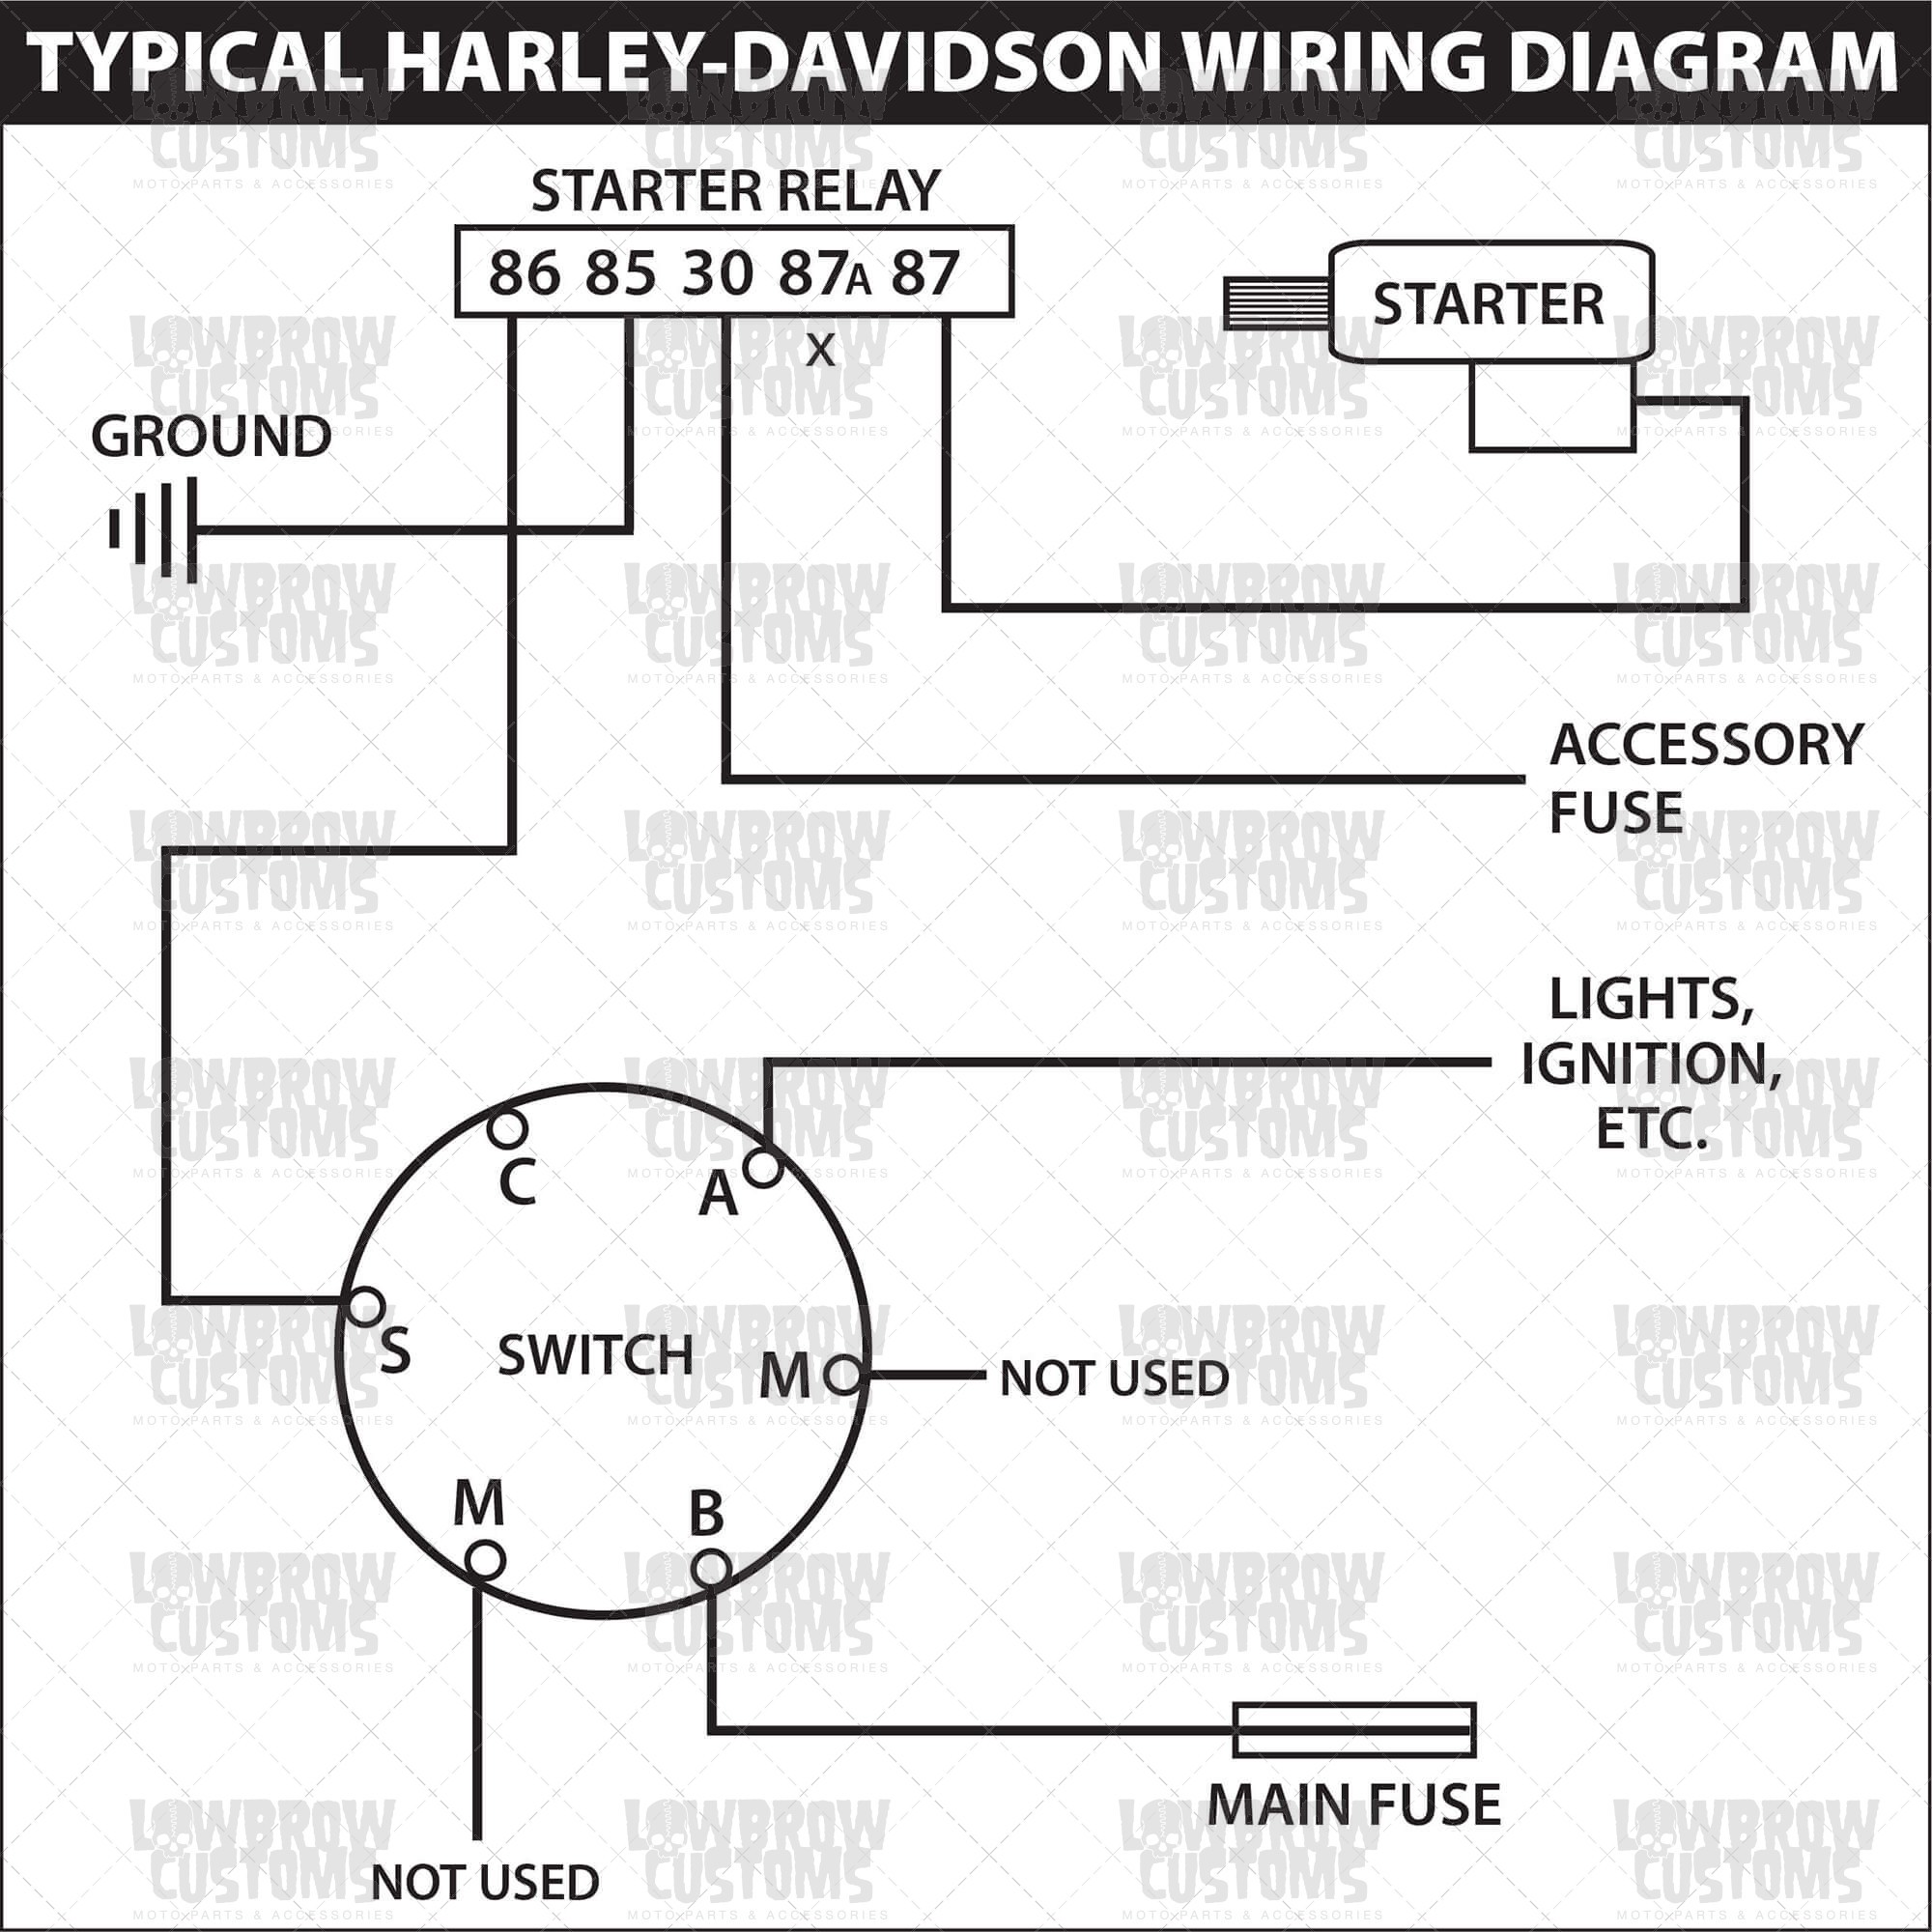 universal ignition switch wiring diagram fine 4 wire ignition switch rh detoxicrecenze com Boat Ignition Switch Wiring Diagram GM Ignition Switch Wiring Diagram